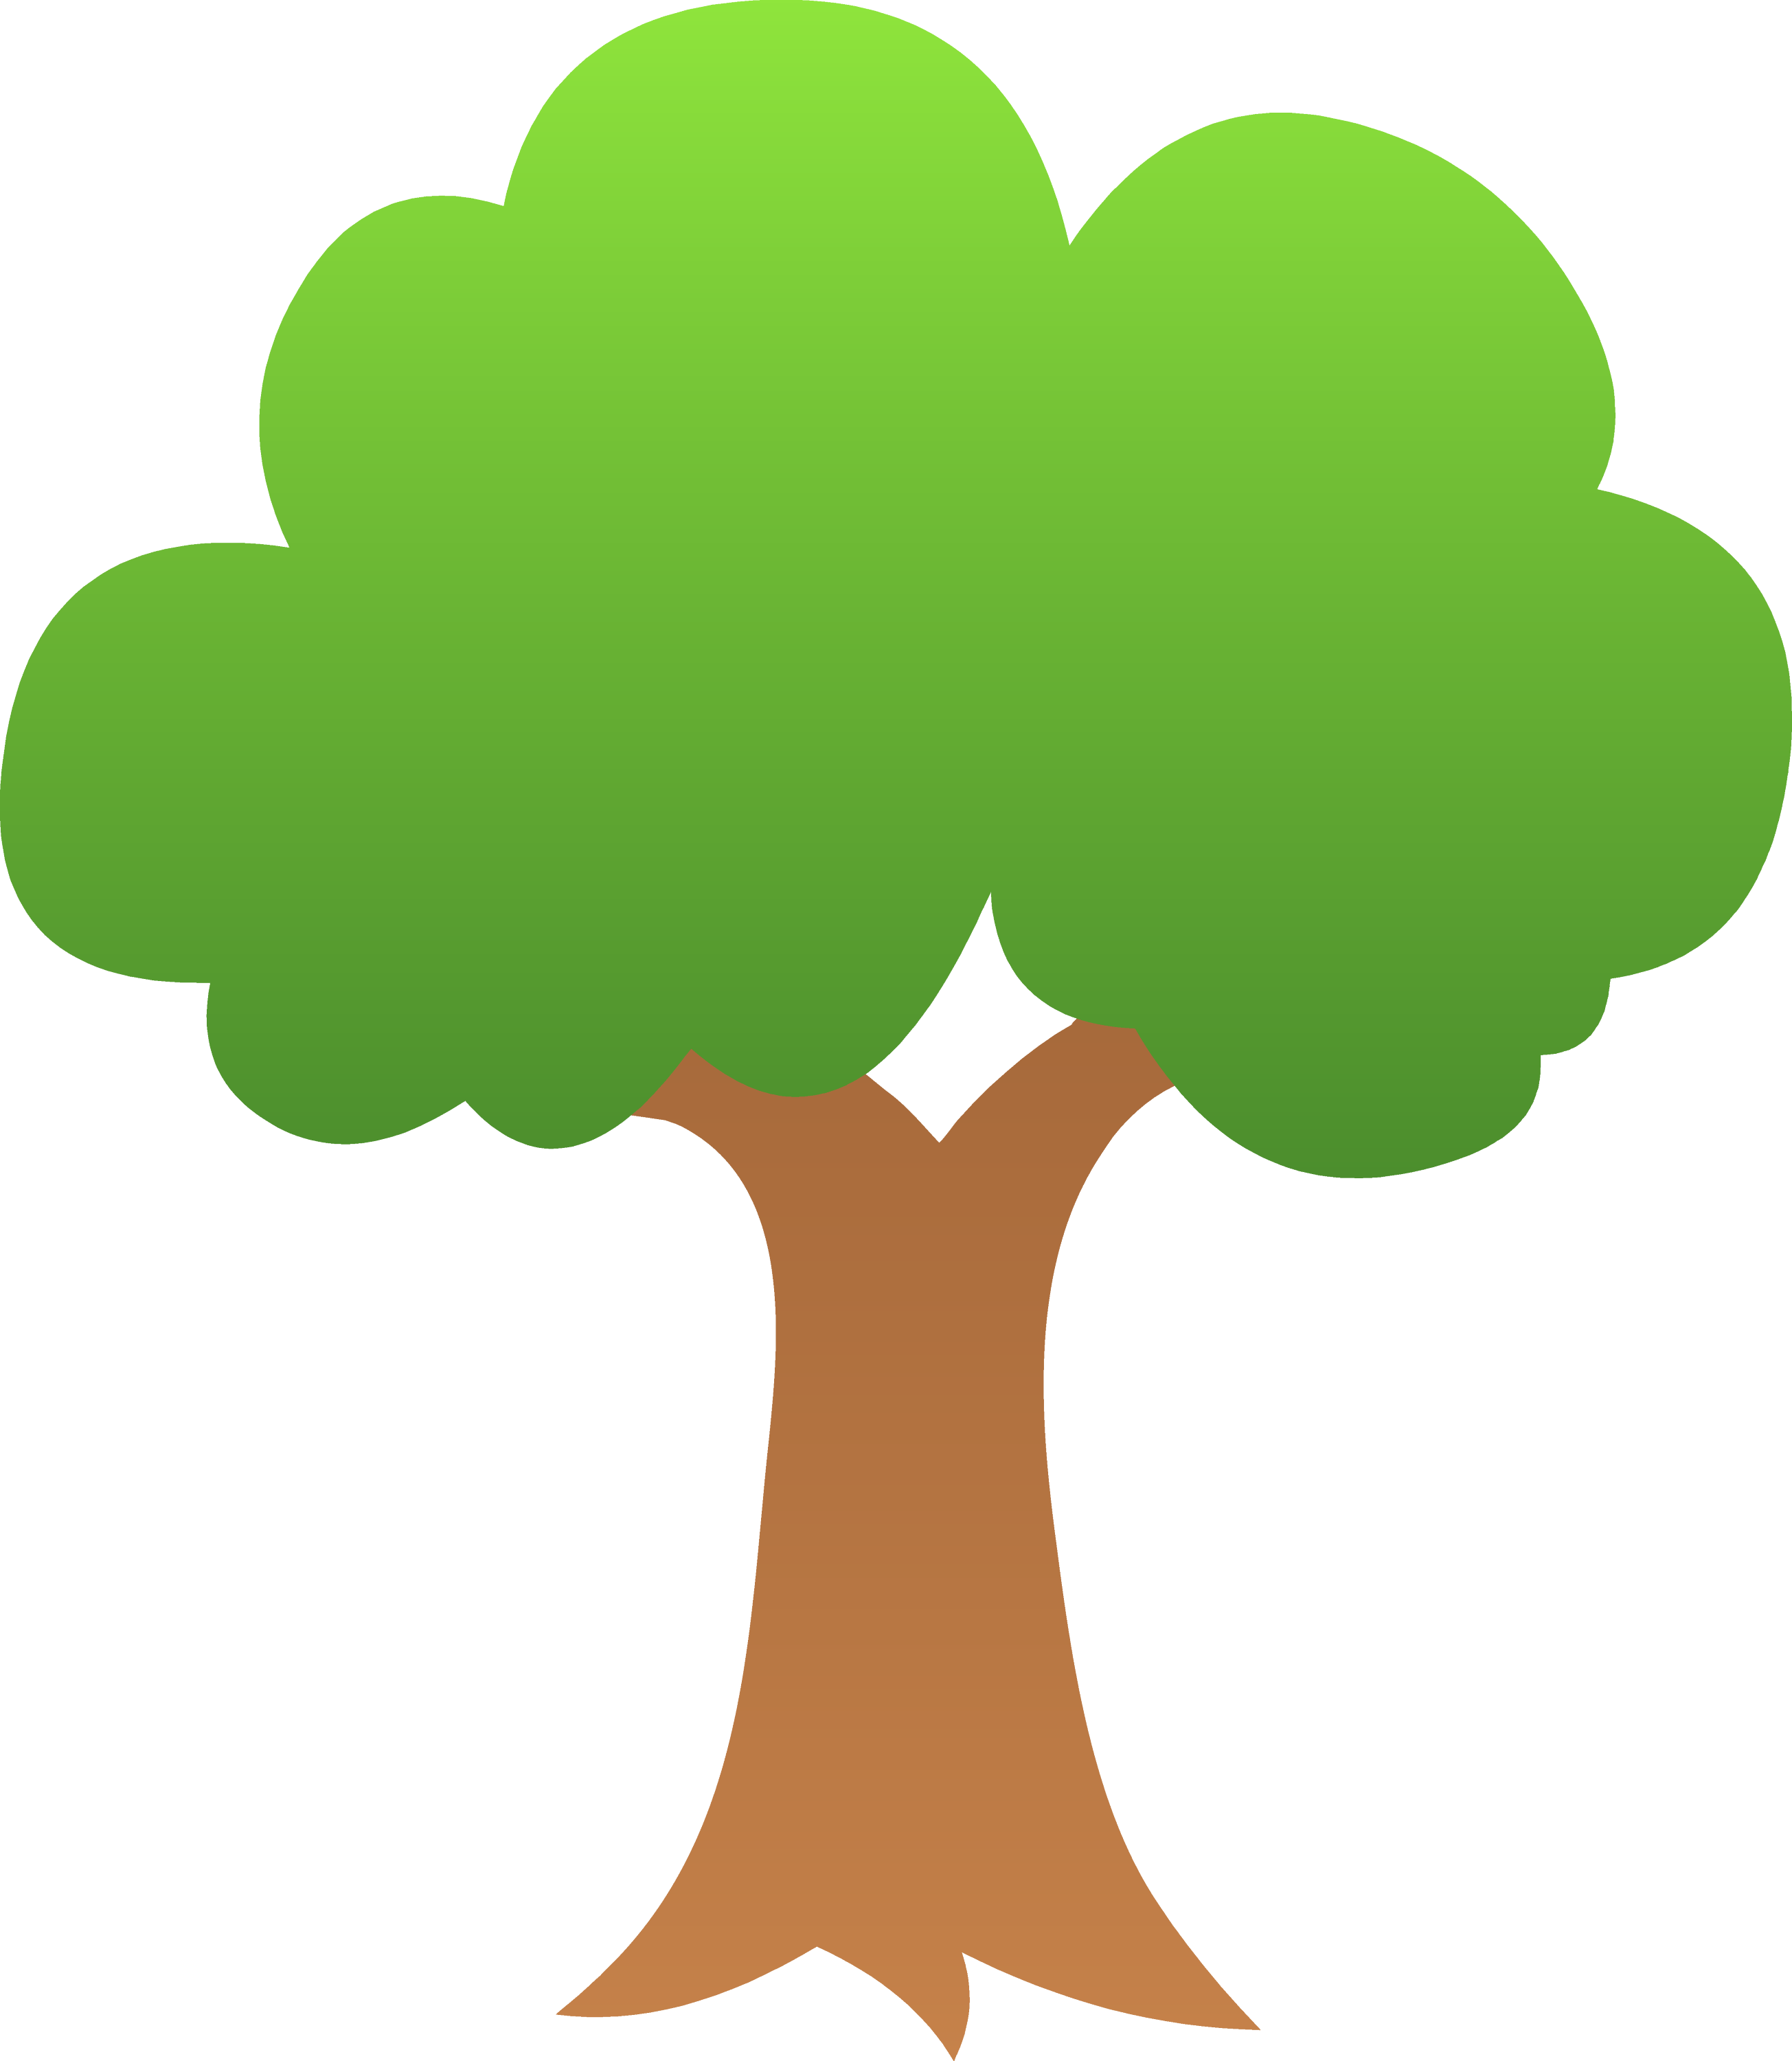 Cute Green Tree Design - Free Clip Art